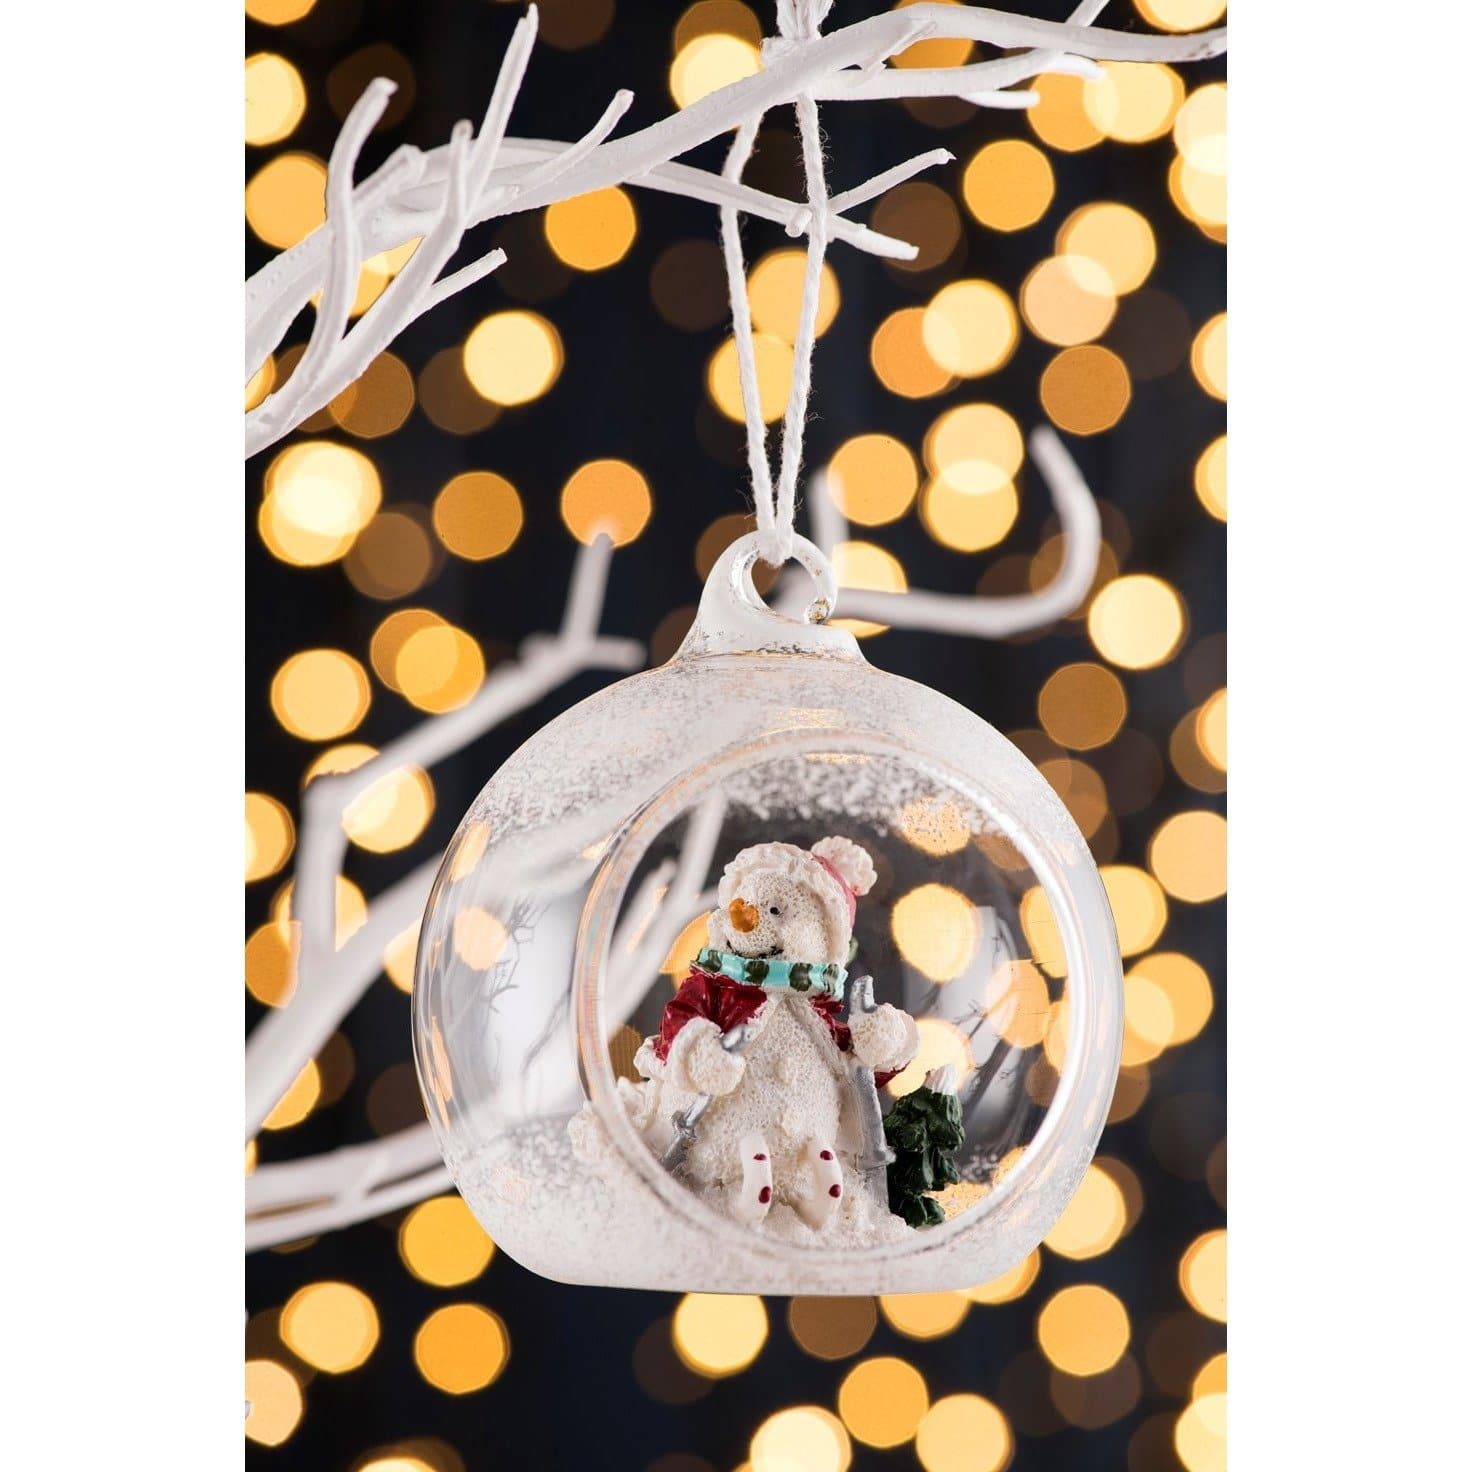 *Sold Out* NEW Skiing Snowman Hanging Ornament GHO55 - Galway Irish Crystal